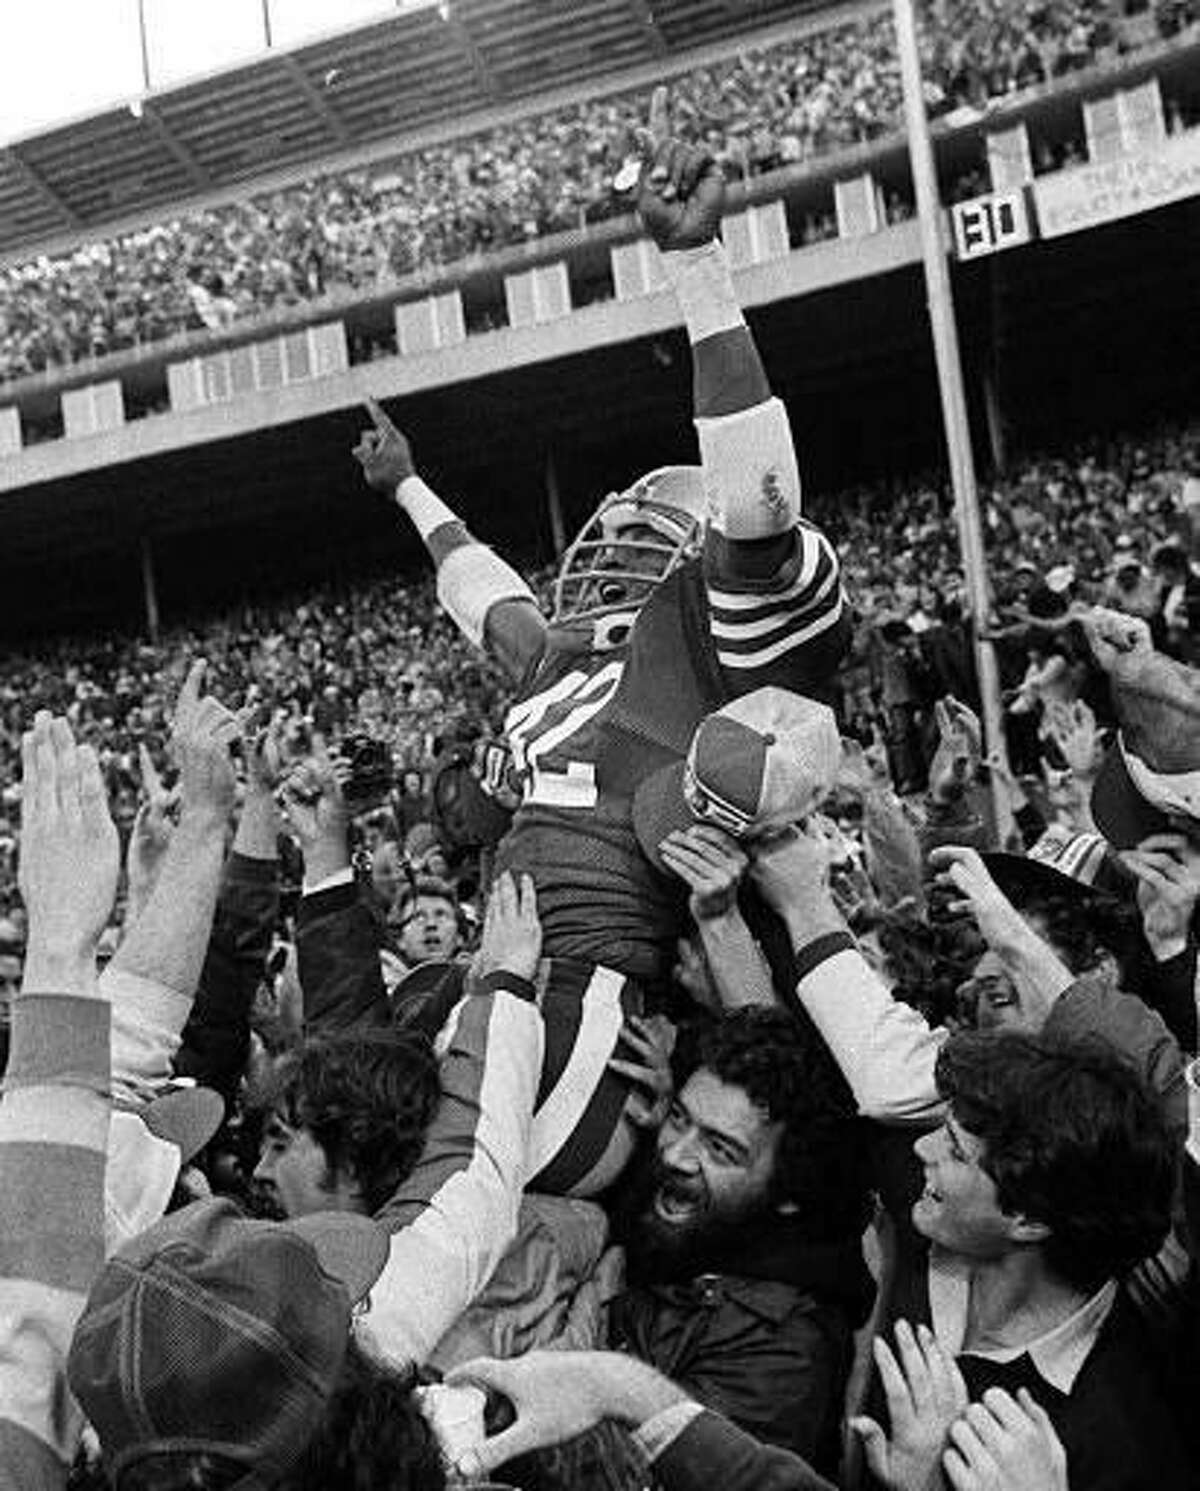 San Francisco 49ers Ronnie Lott is carried off the field by fans after the 49ers beat the New York Giants to win the division title at Candlestick Park in San Francisco, in this November 29, 1981 photo. Lott will be inducted into the Pro Football Hall of Fame during ceremonies in Canton, Ohio Saturday July 29, 2000. (AP Photo/Paul Sakuma)